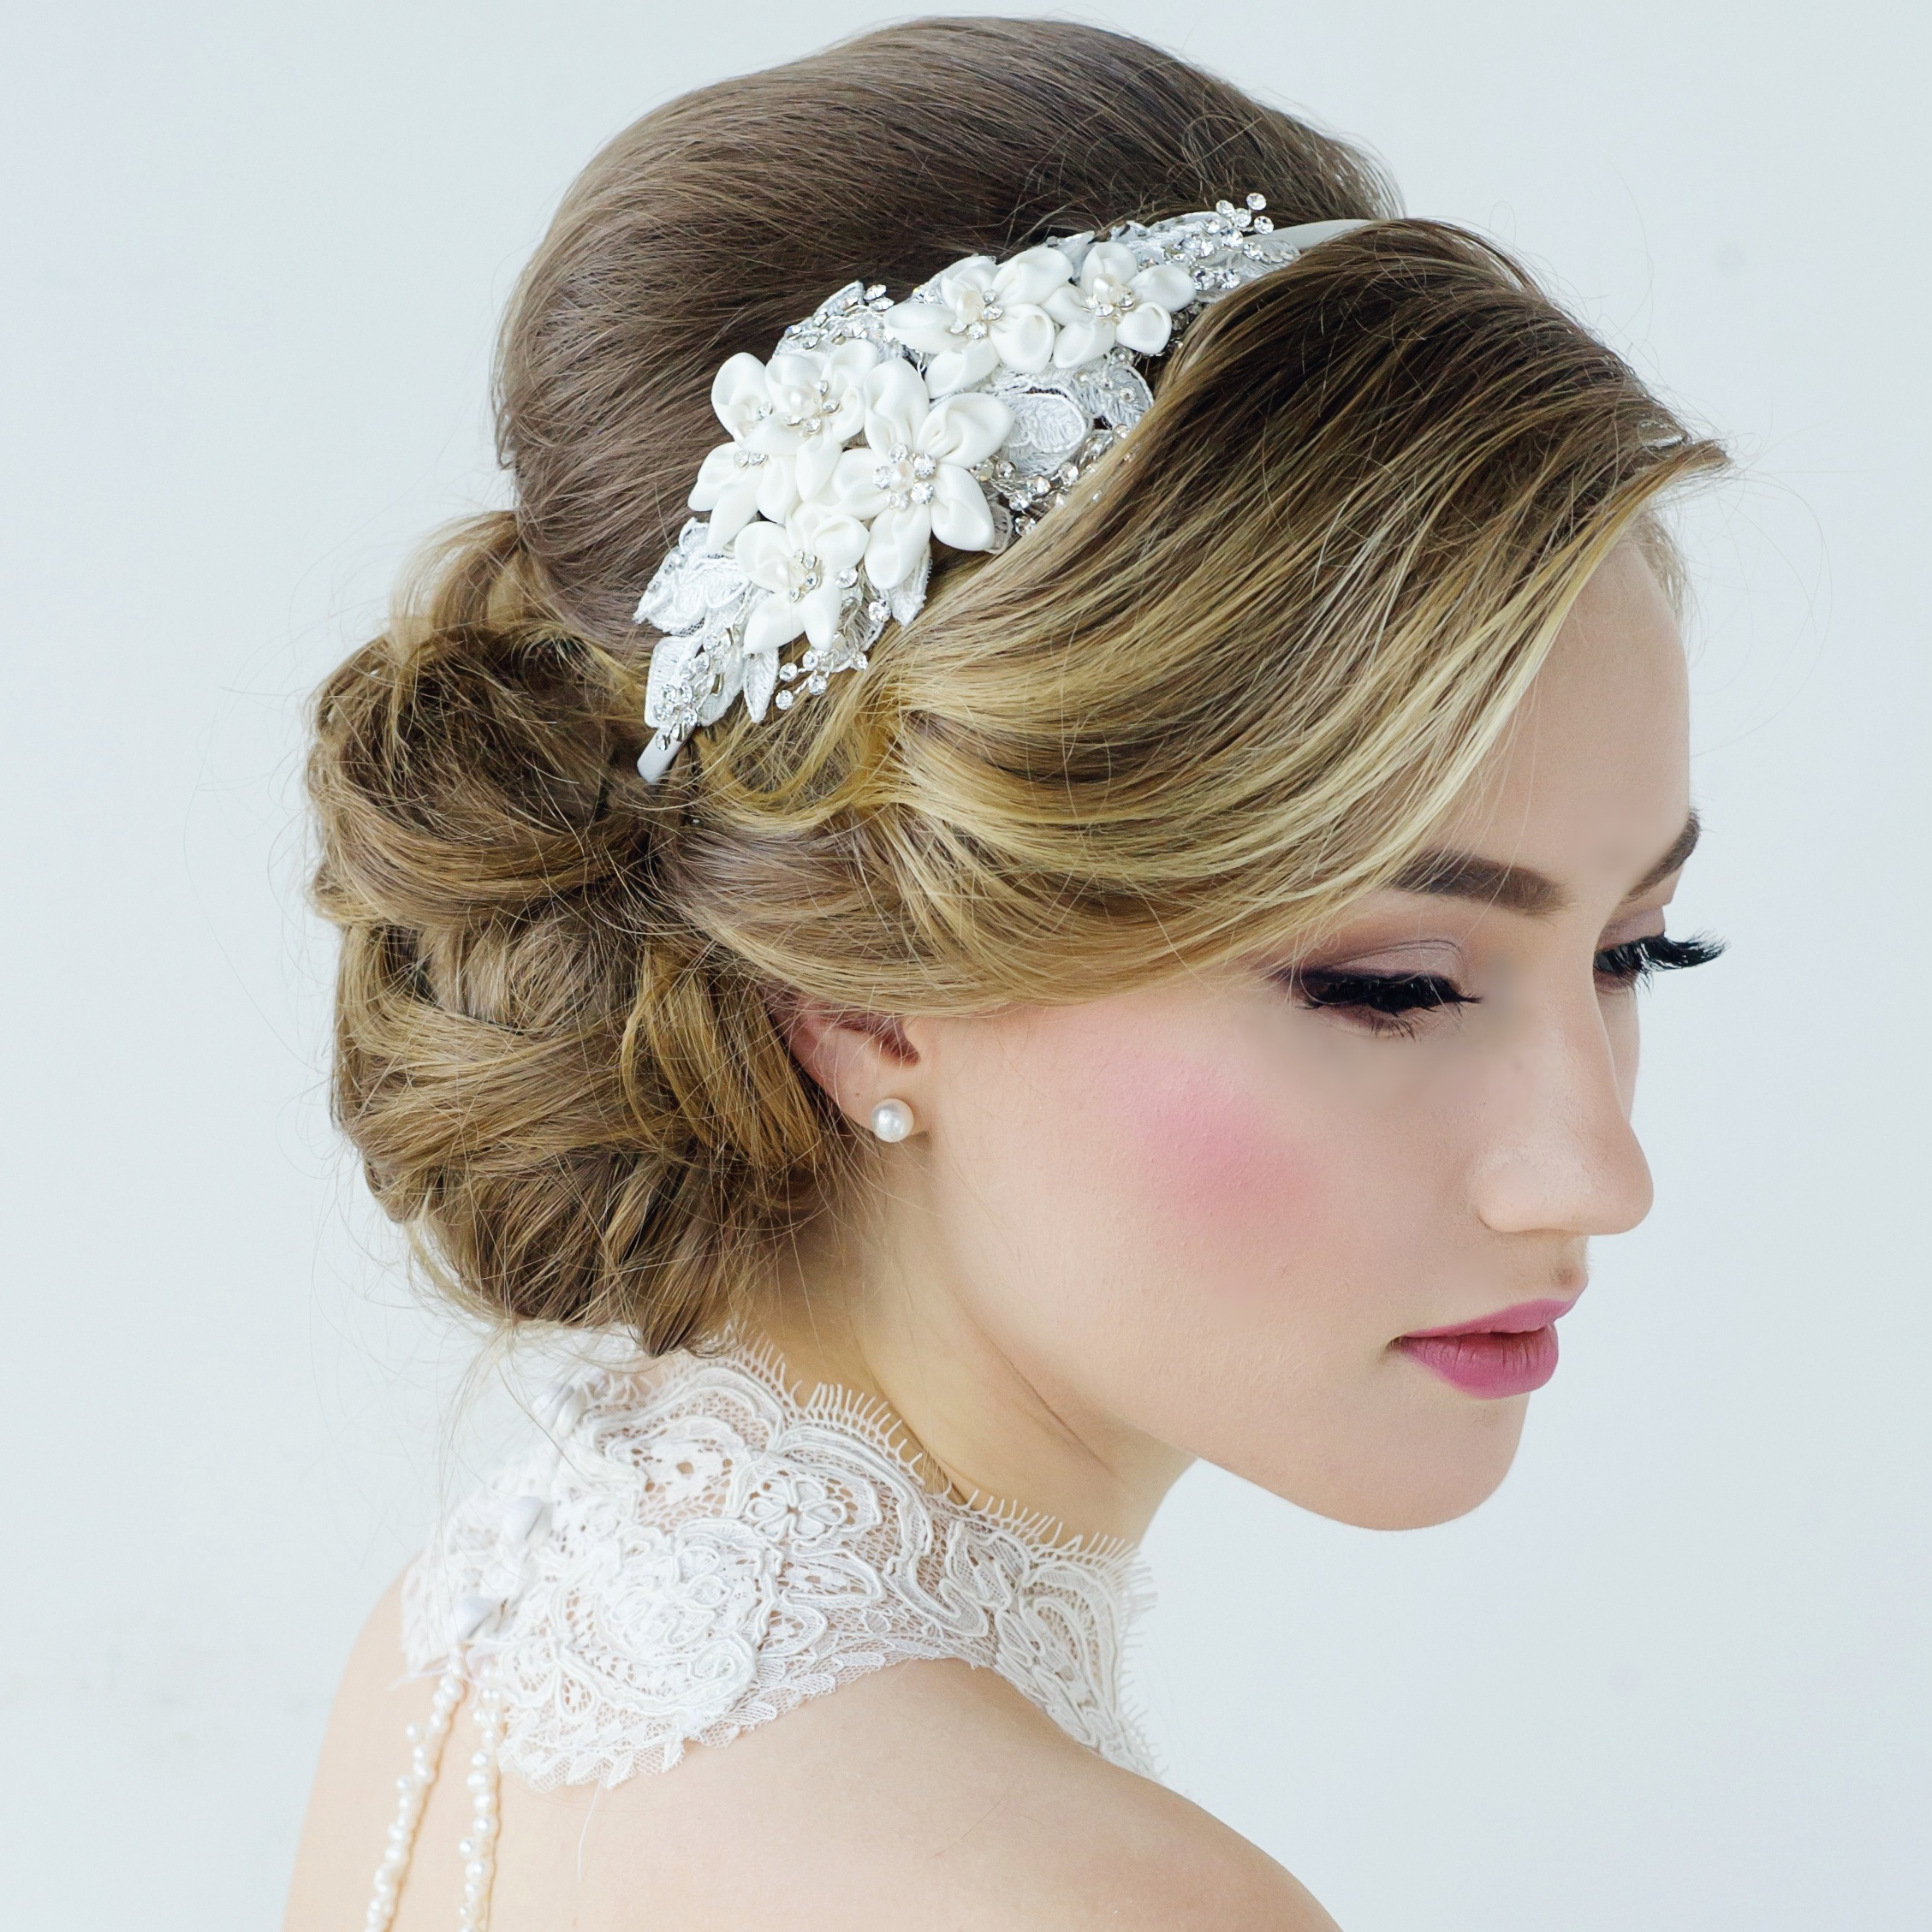 Wedding Flower Headpieces: Makeup Artist